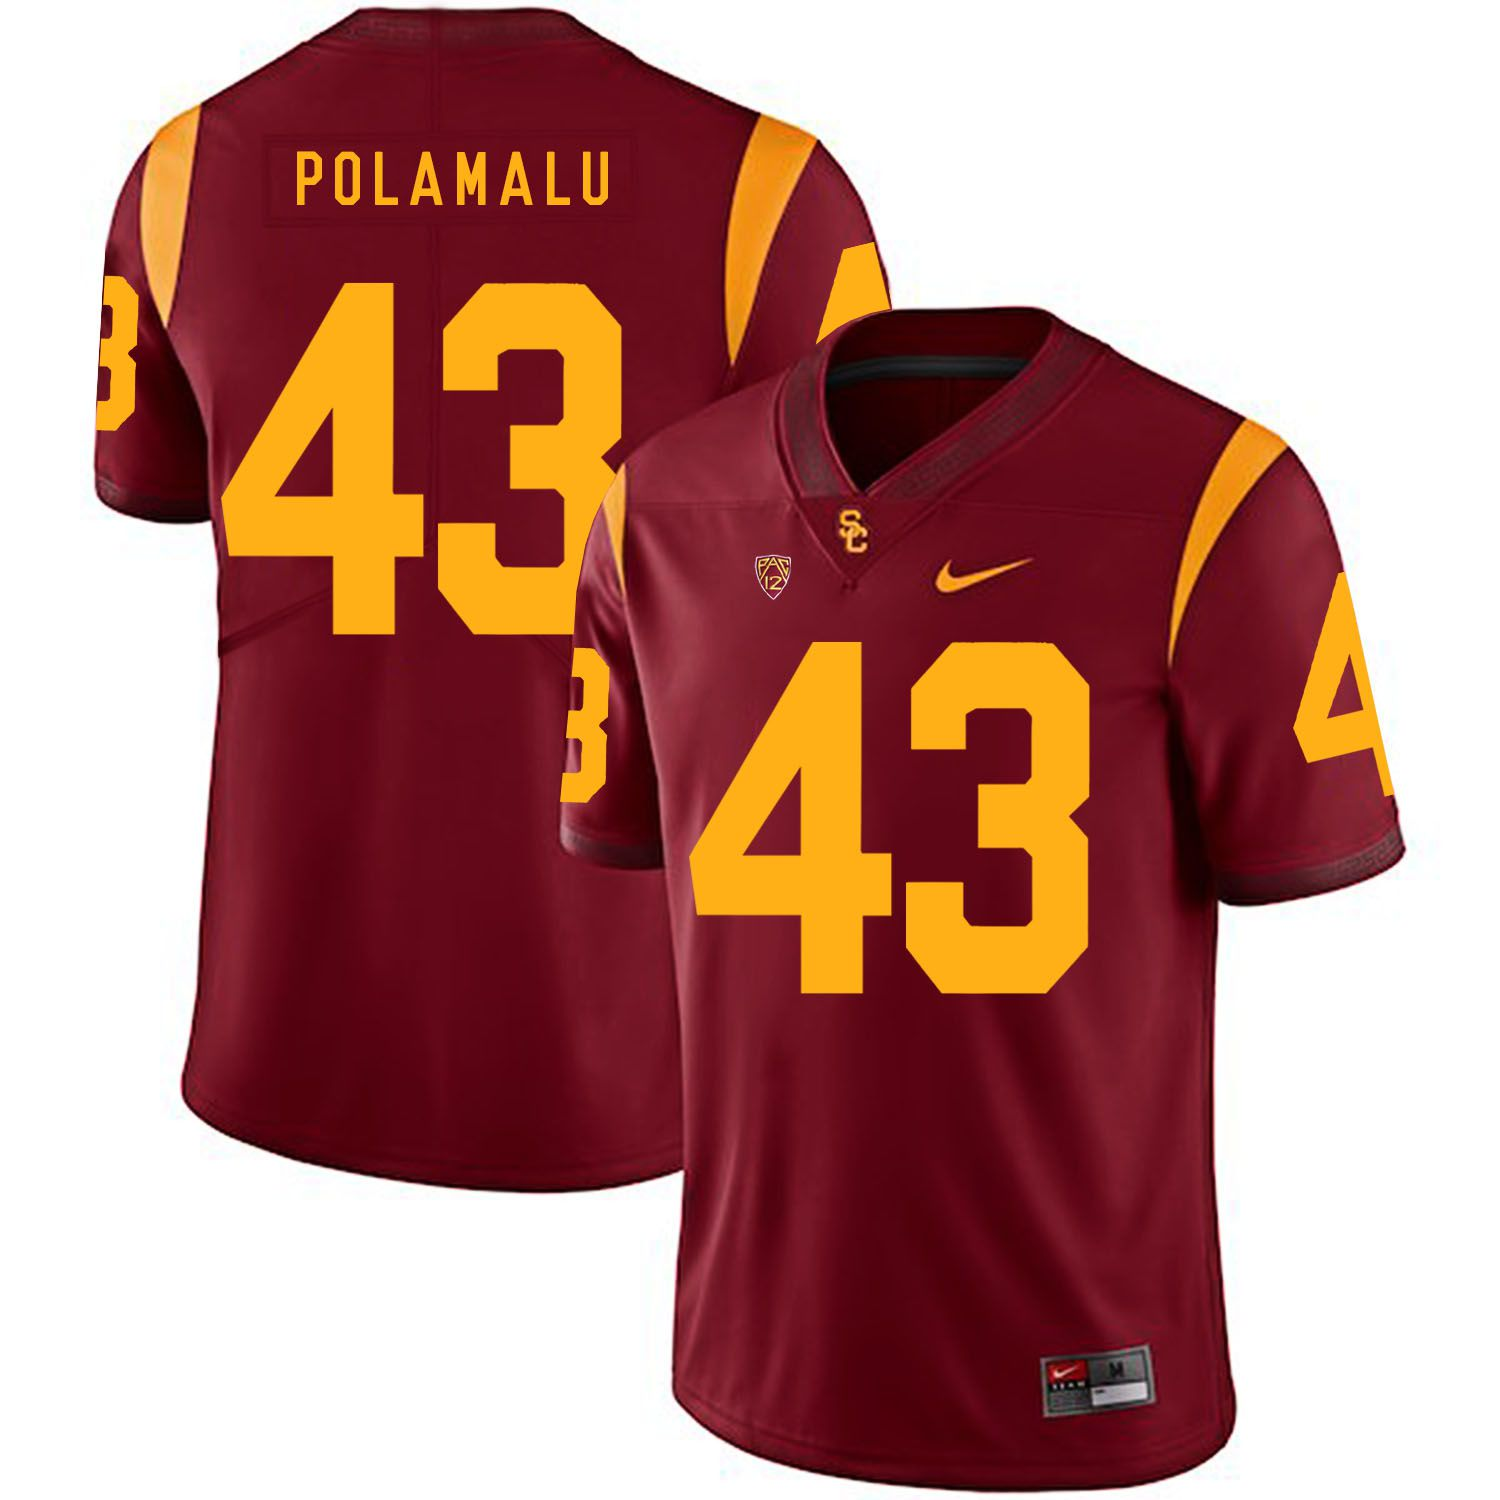 Men USC Trojans 43 Polamalu Red Customized NCAA Jerseys